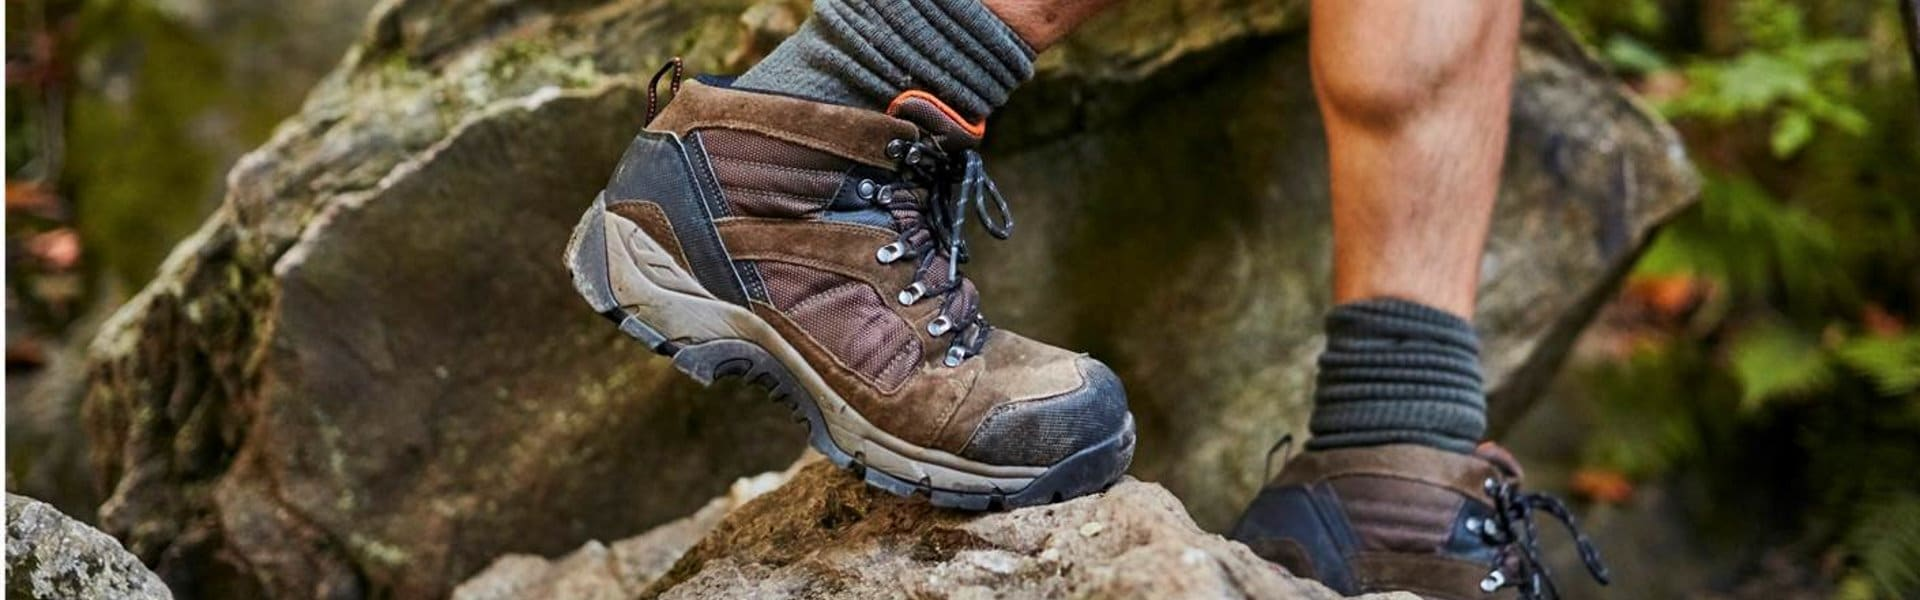 Best Hiking Shoes for Plantar Fasciitis Reviewed in Detail